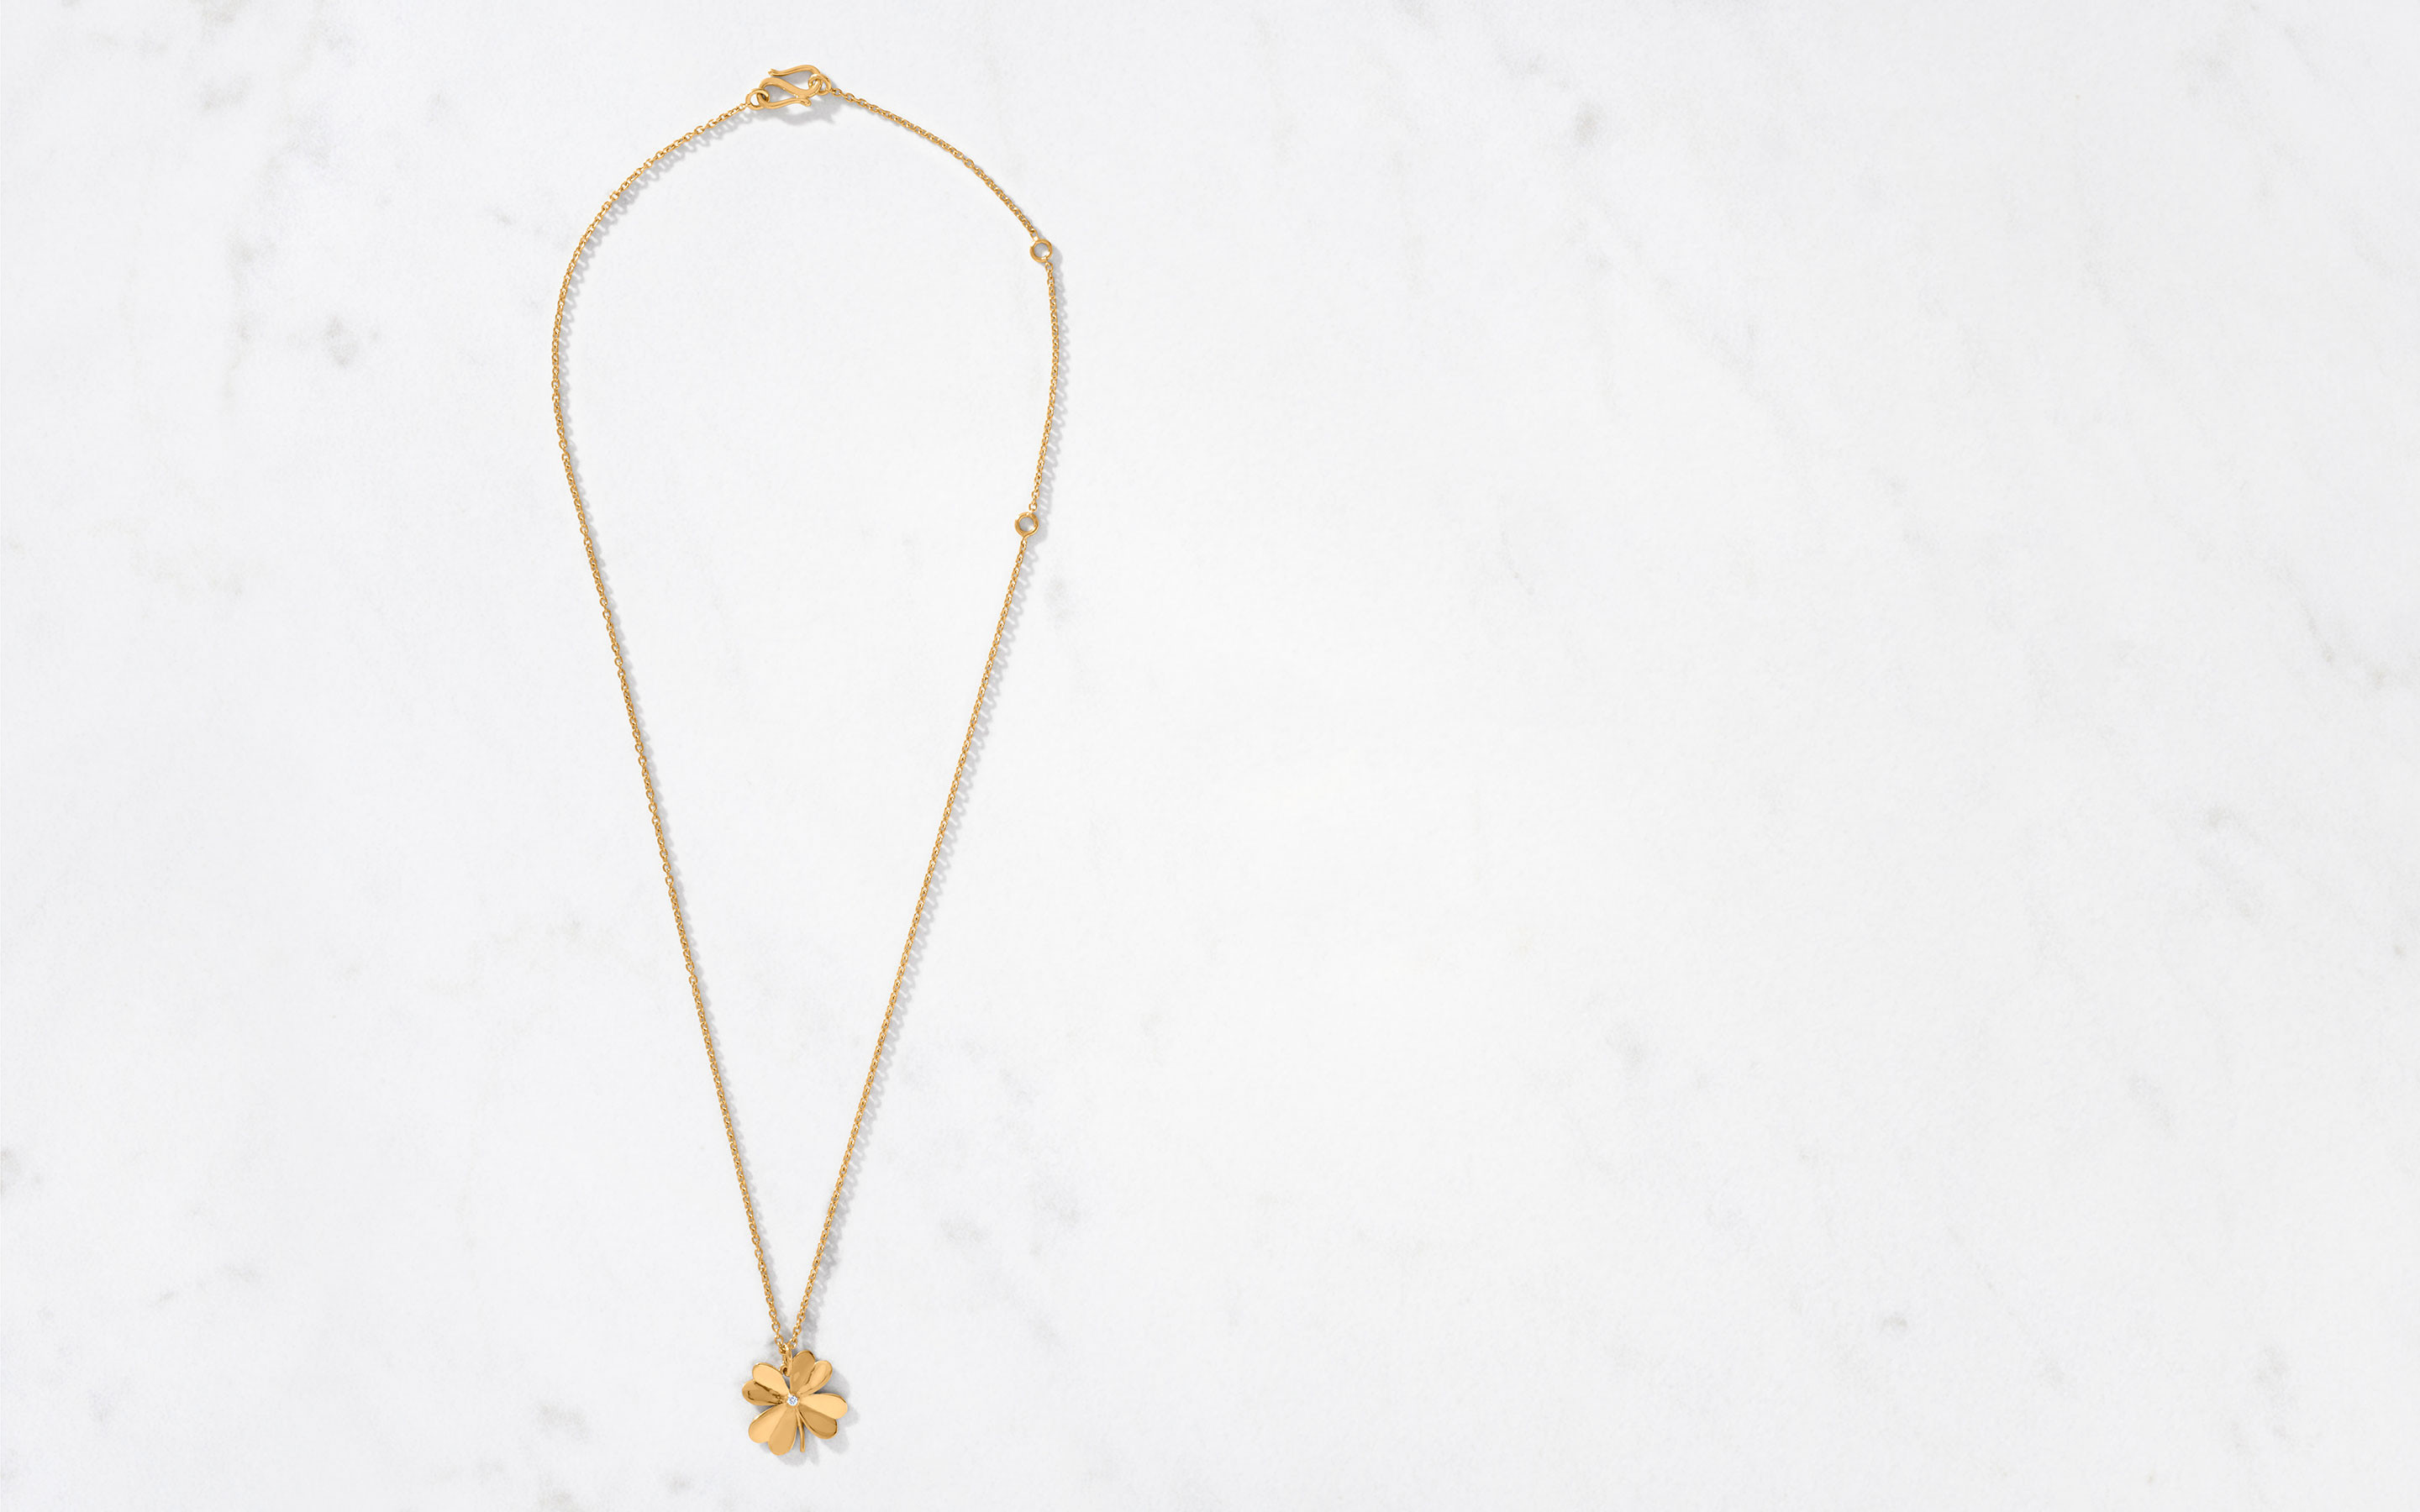 fancy 22 karat gold clover necklace polished finish  with a center cut round diamond